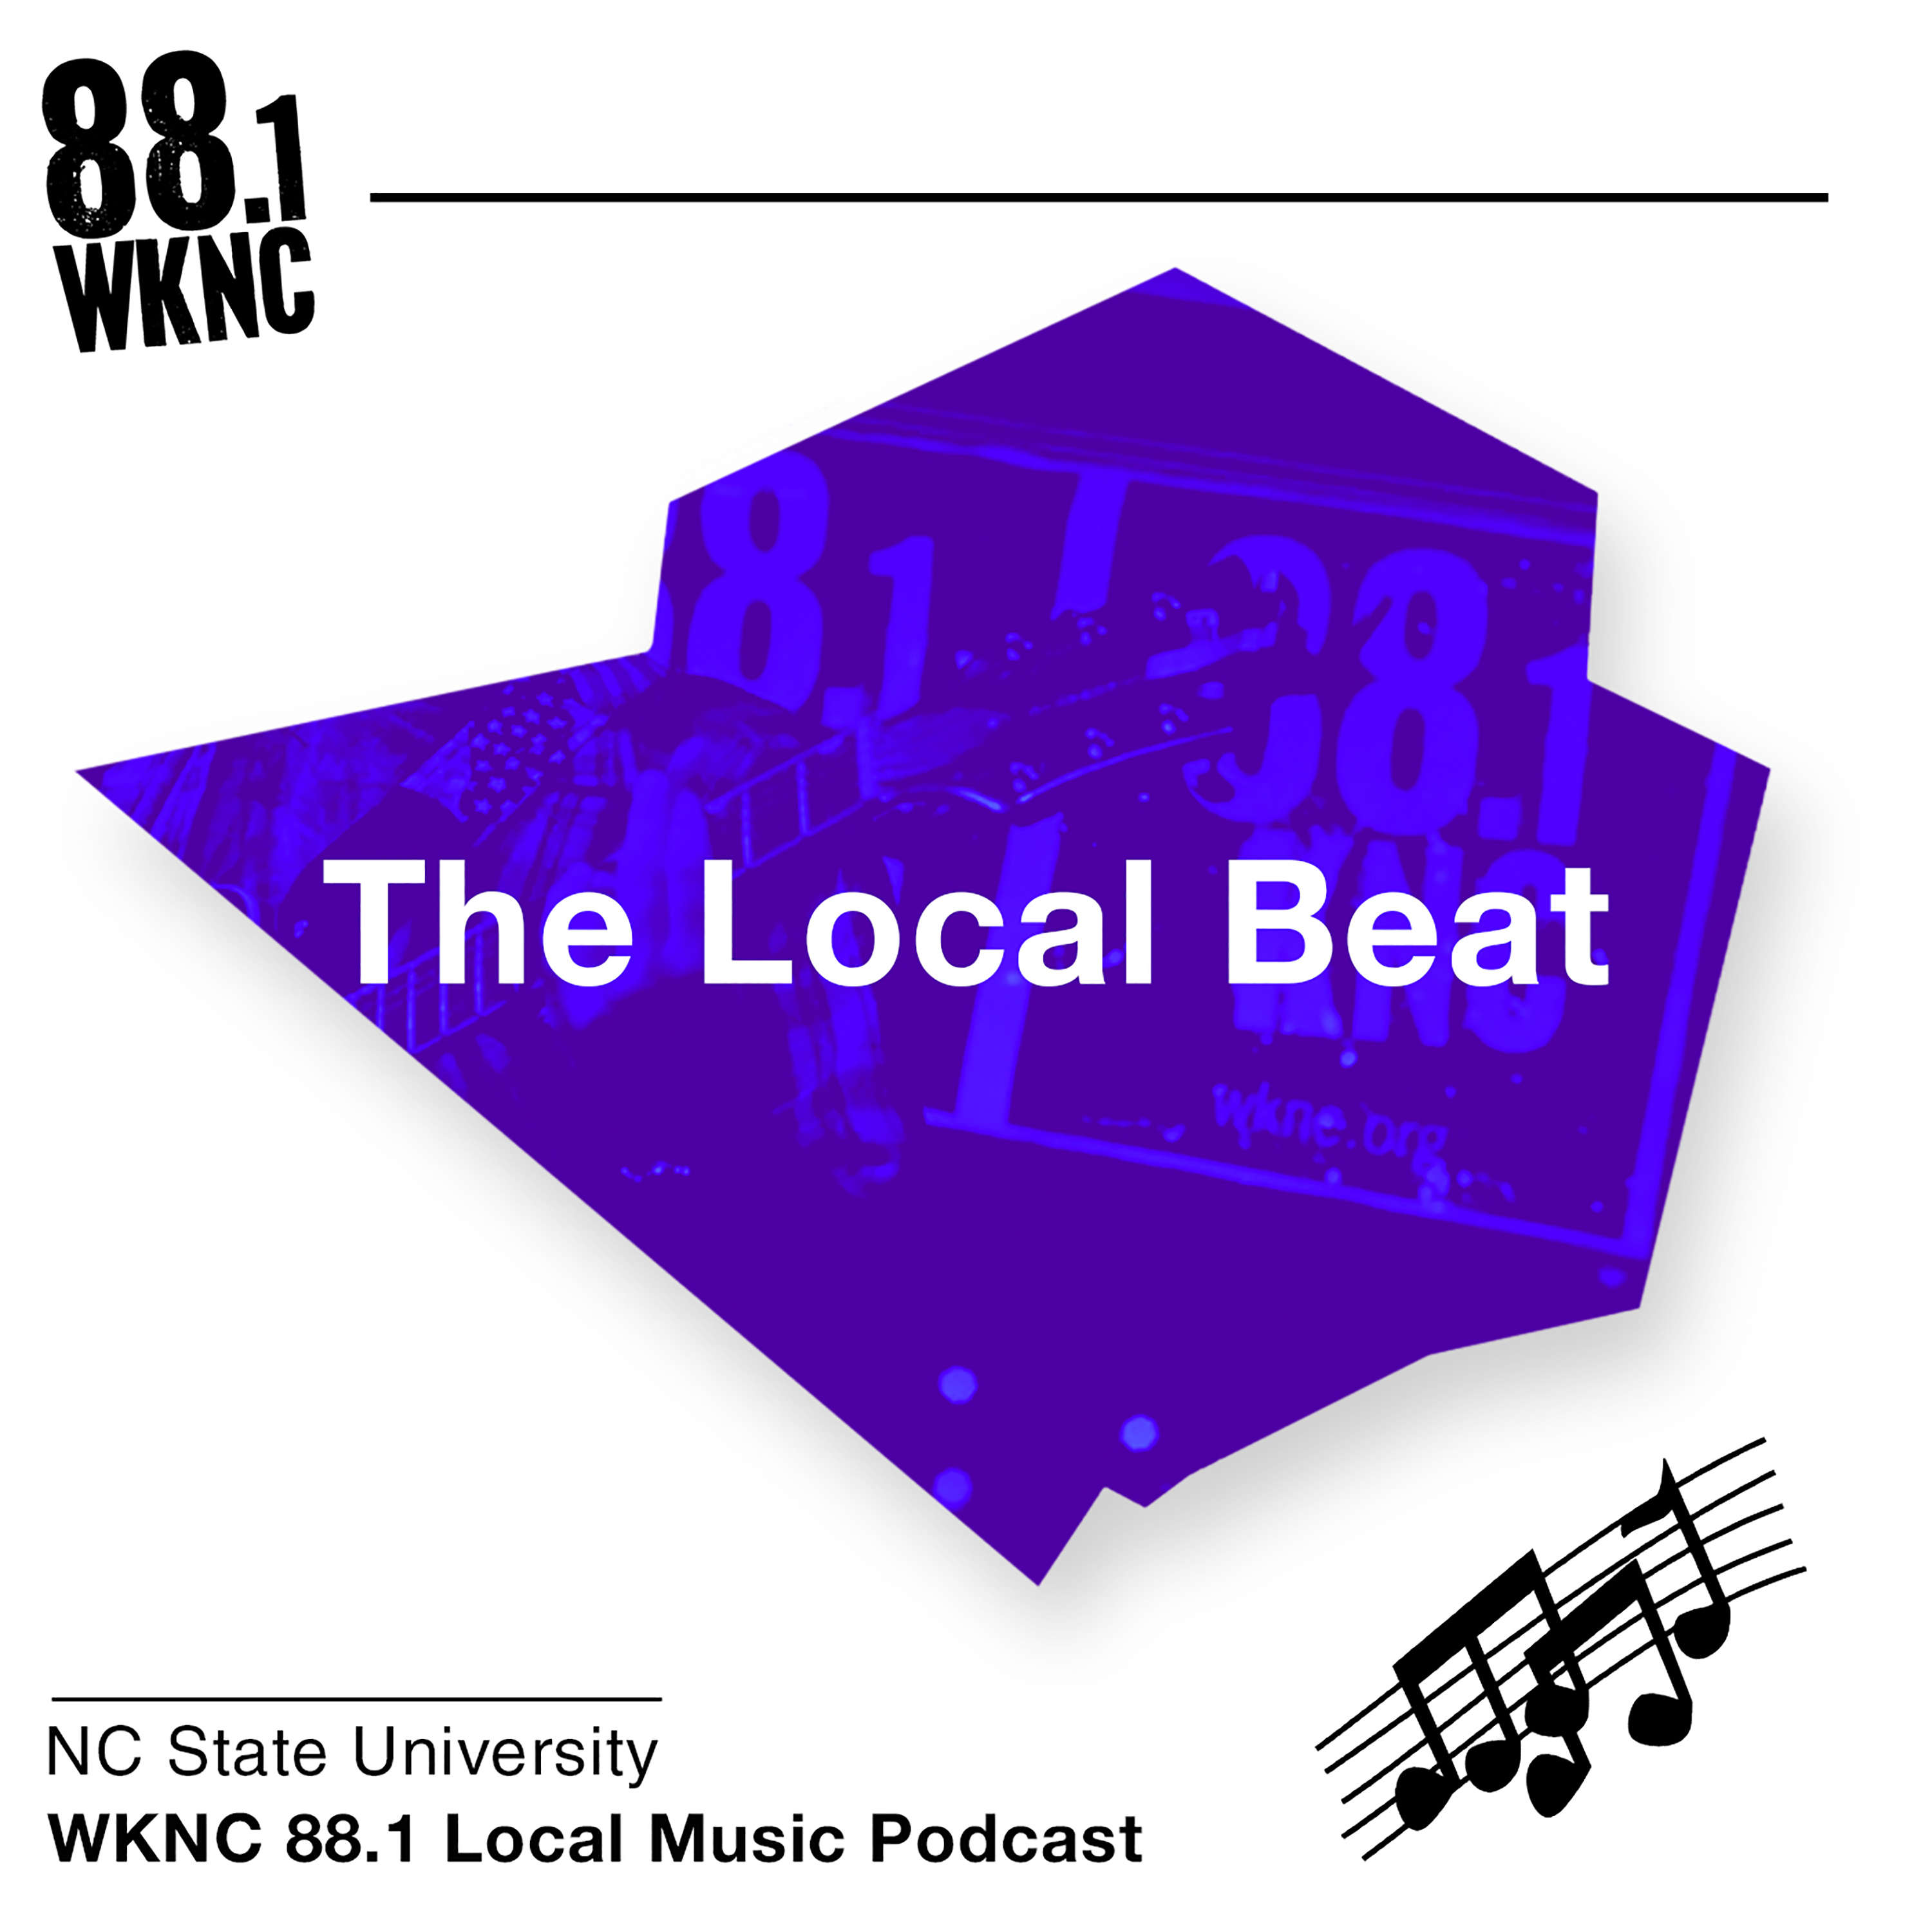 The Local Beat: Truth Club